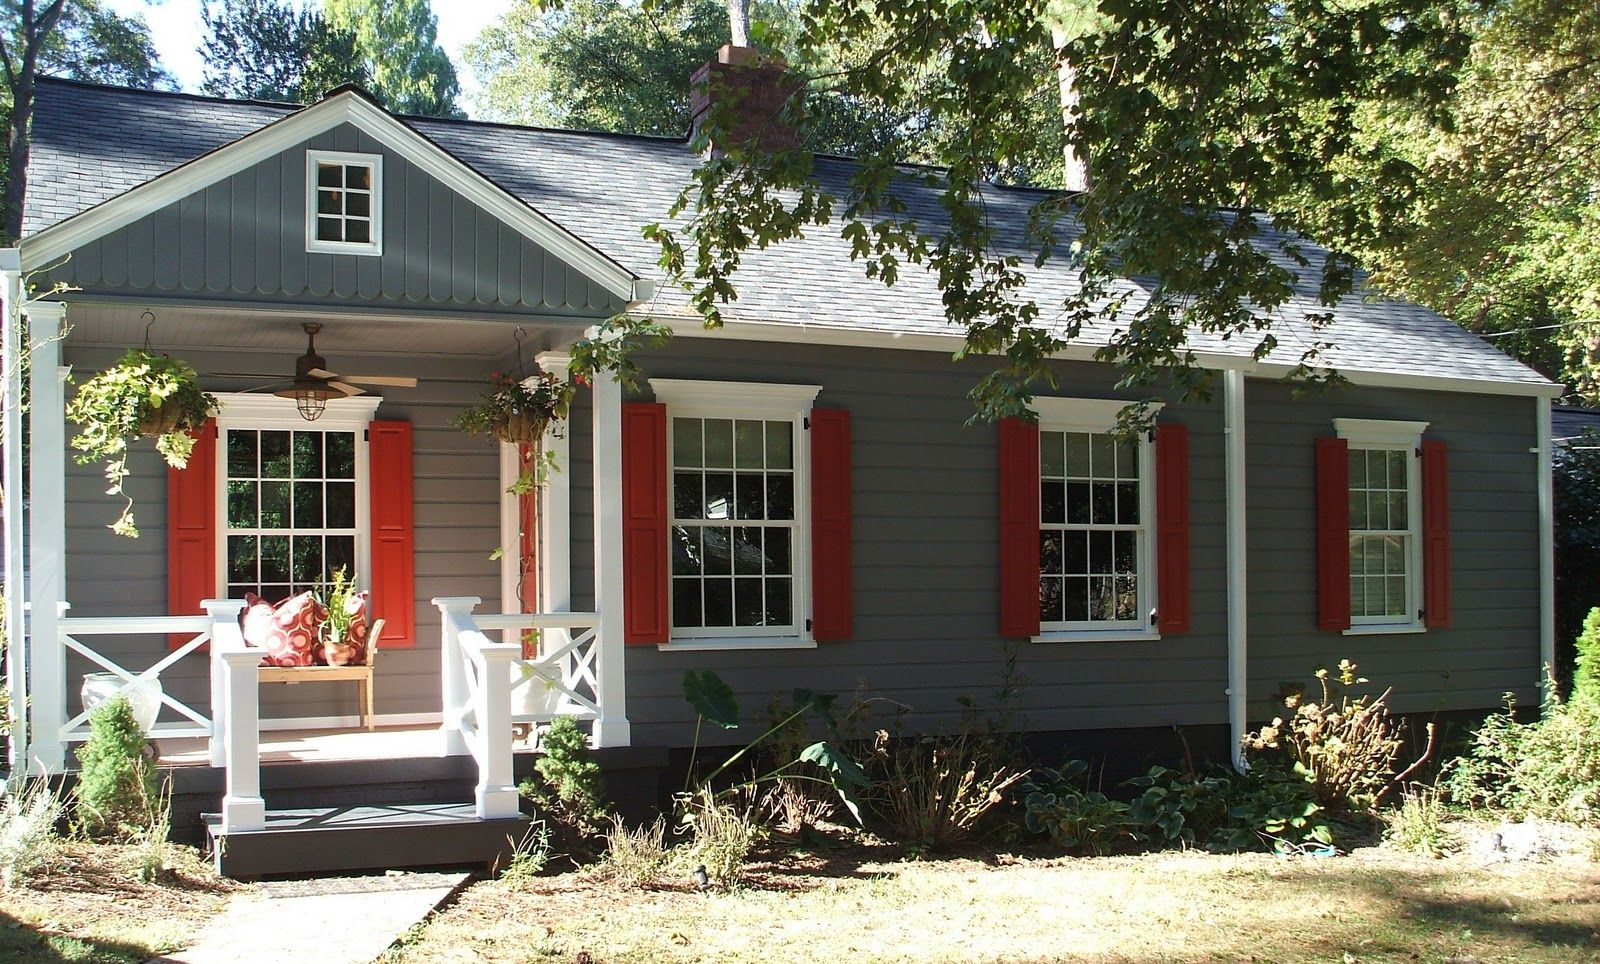 Paint Suggestions cabin exterior paint schemes | exterior paint color suggestions